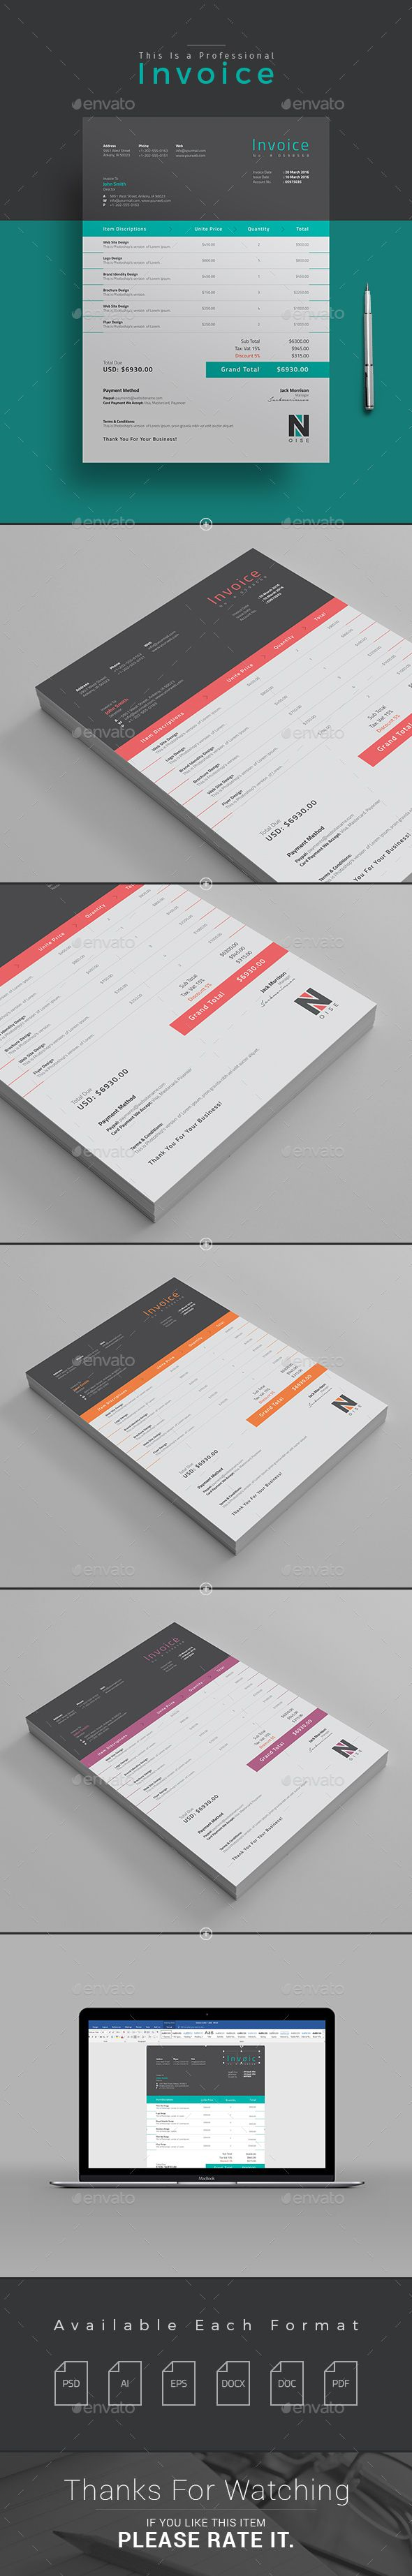 #Invoice - Proposals & Invoices Stationery Download here: https://graphicriver.net/item/invoice/15468166?ref=classicdesignp